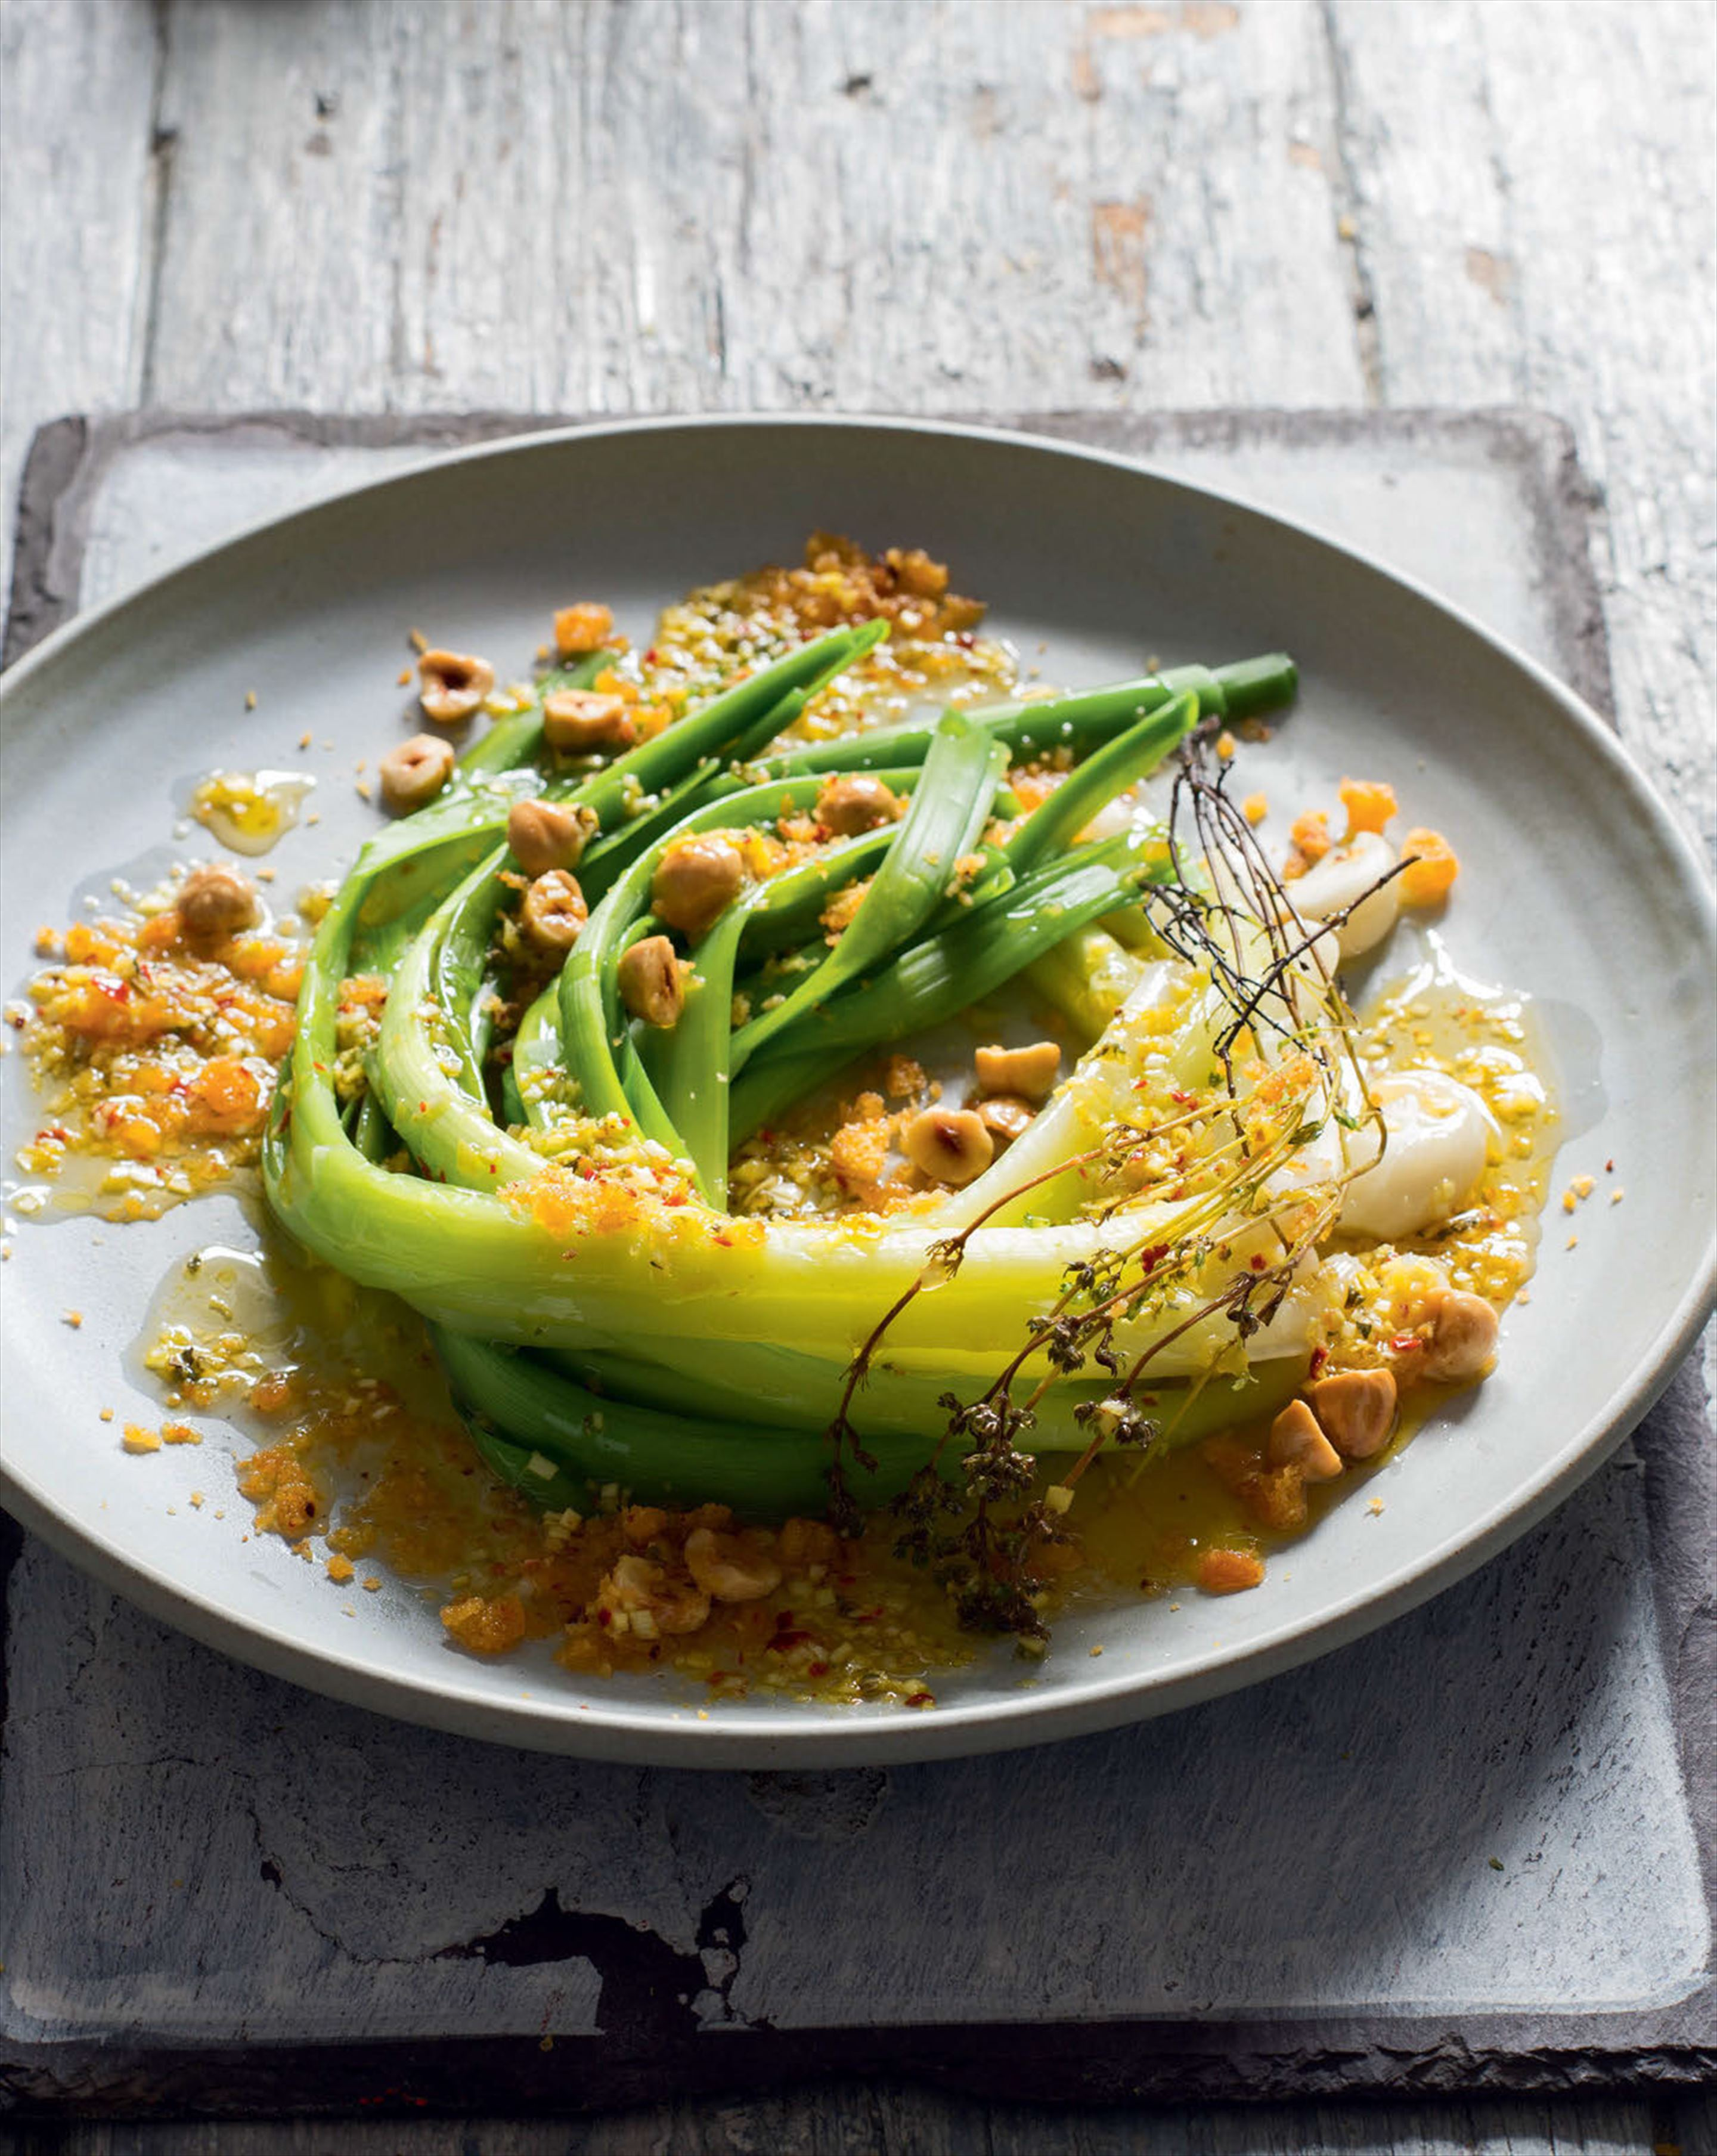 Baby leeks in saffron vinaigrette with hazelnut crumbs